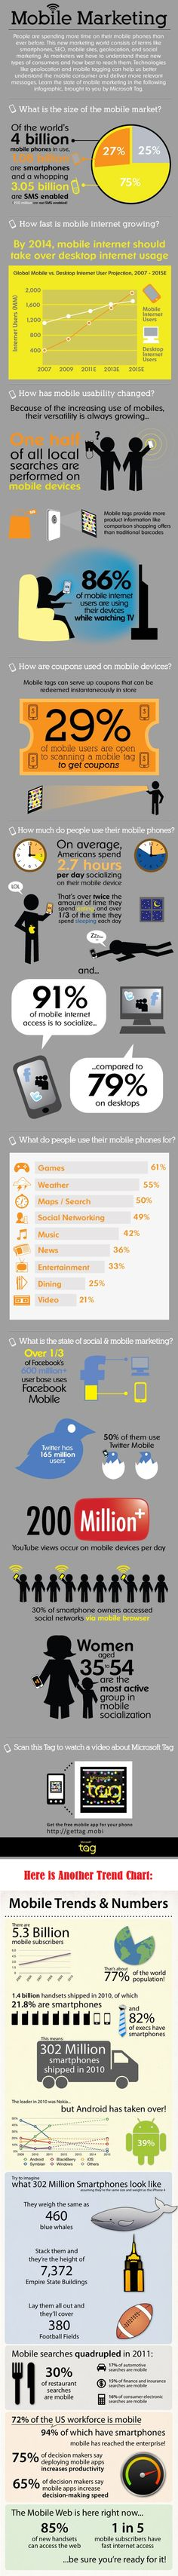 Mobile Marketing & Semantic Search Big Trends Coming Our Way